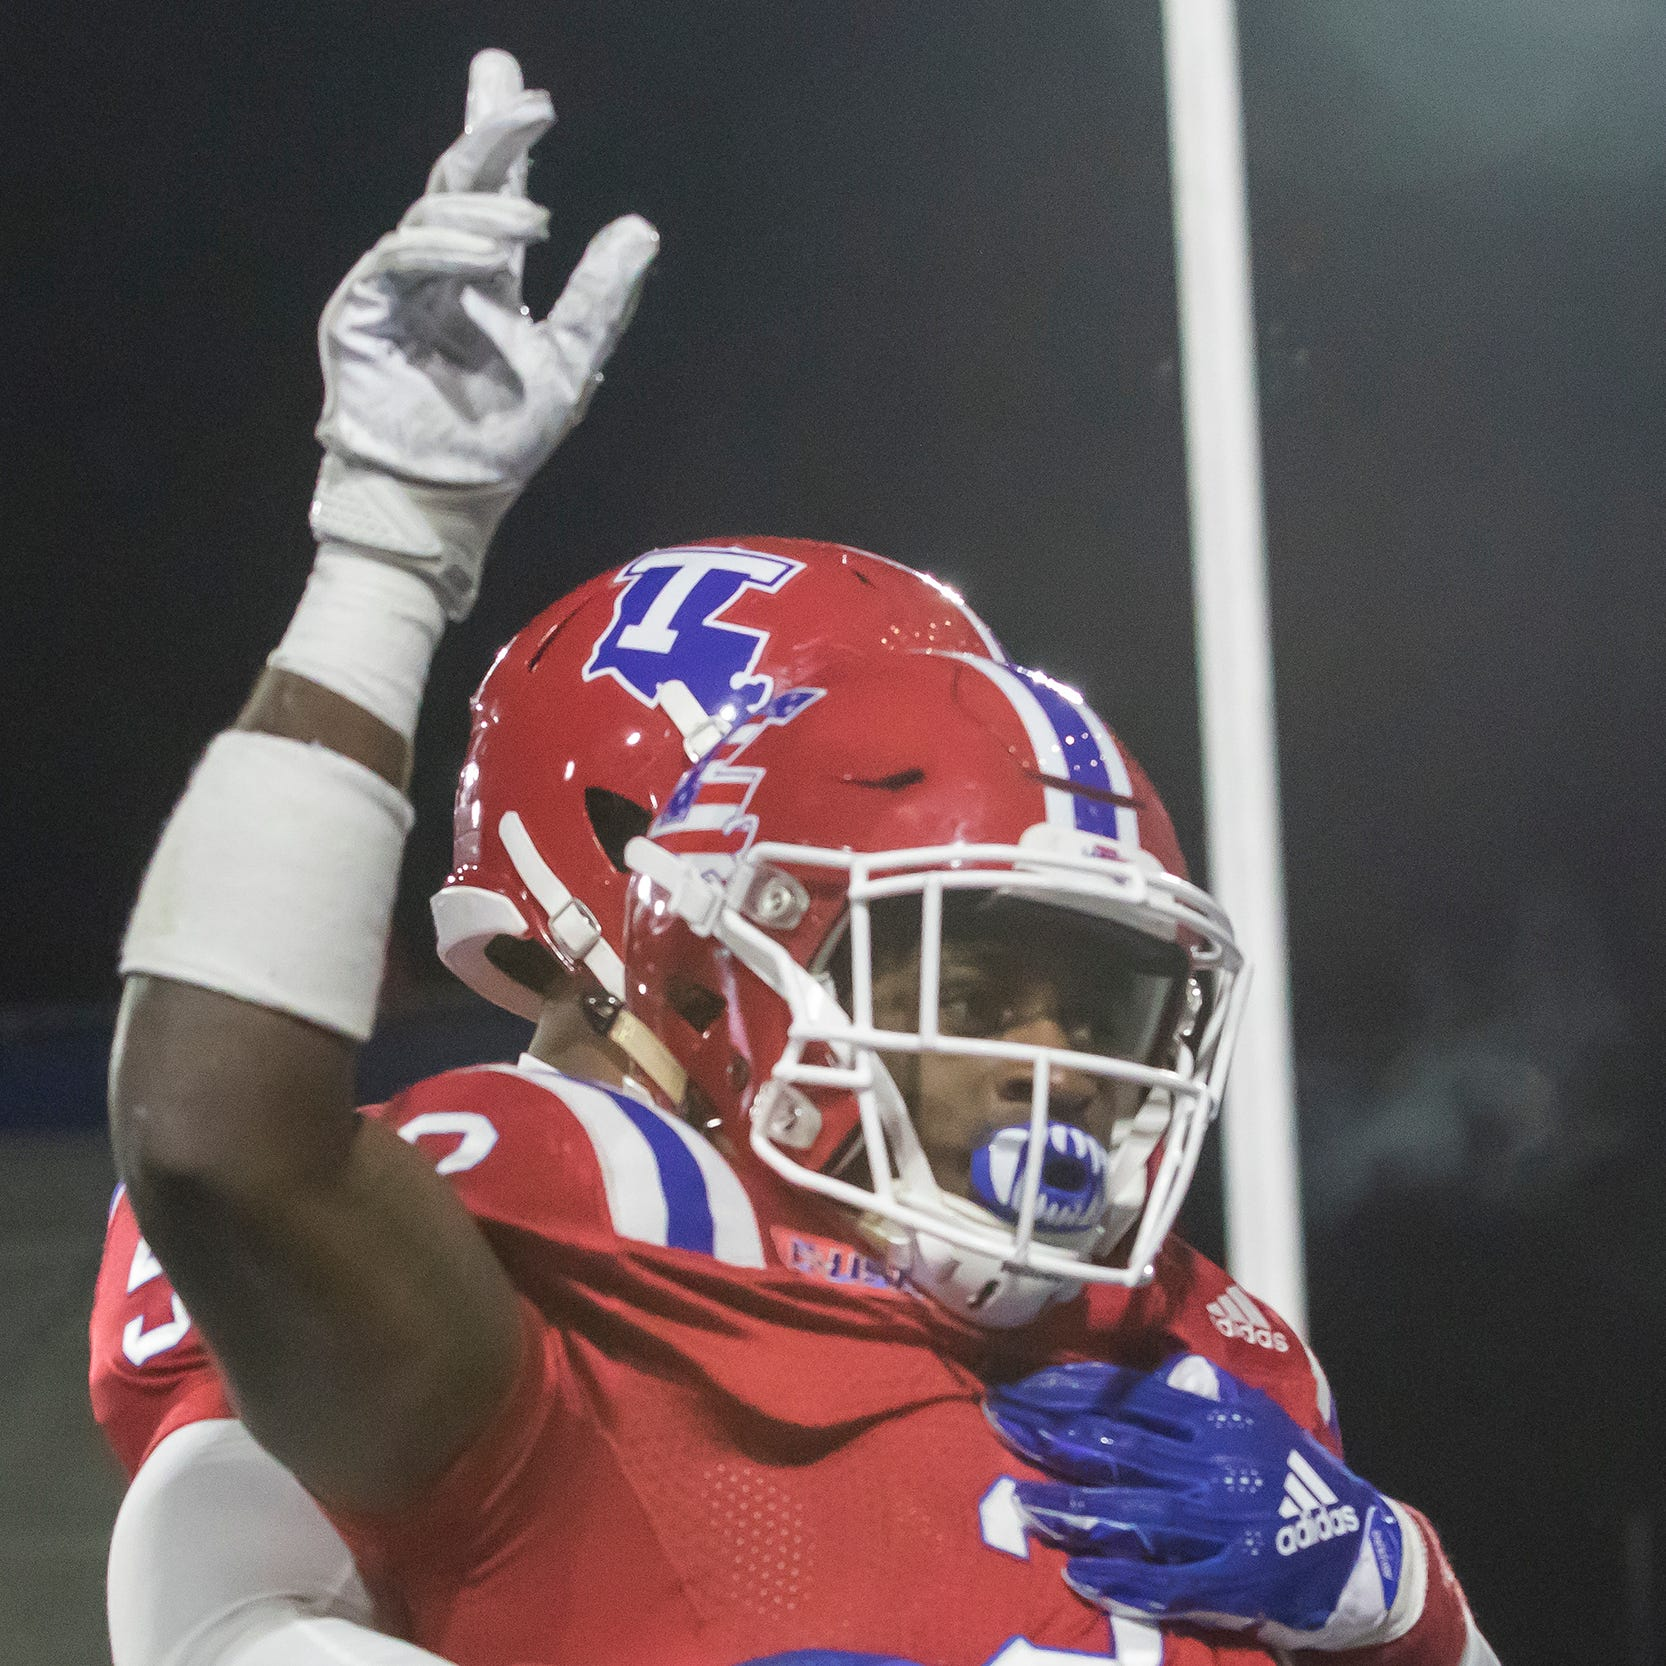 LA Tech offense remains inconsistent, Dancy, Hardy provide spark in win over Rice